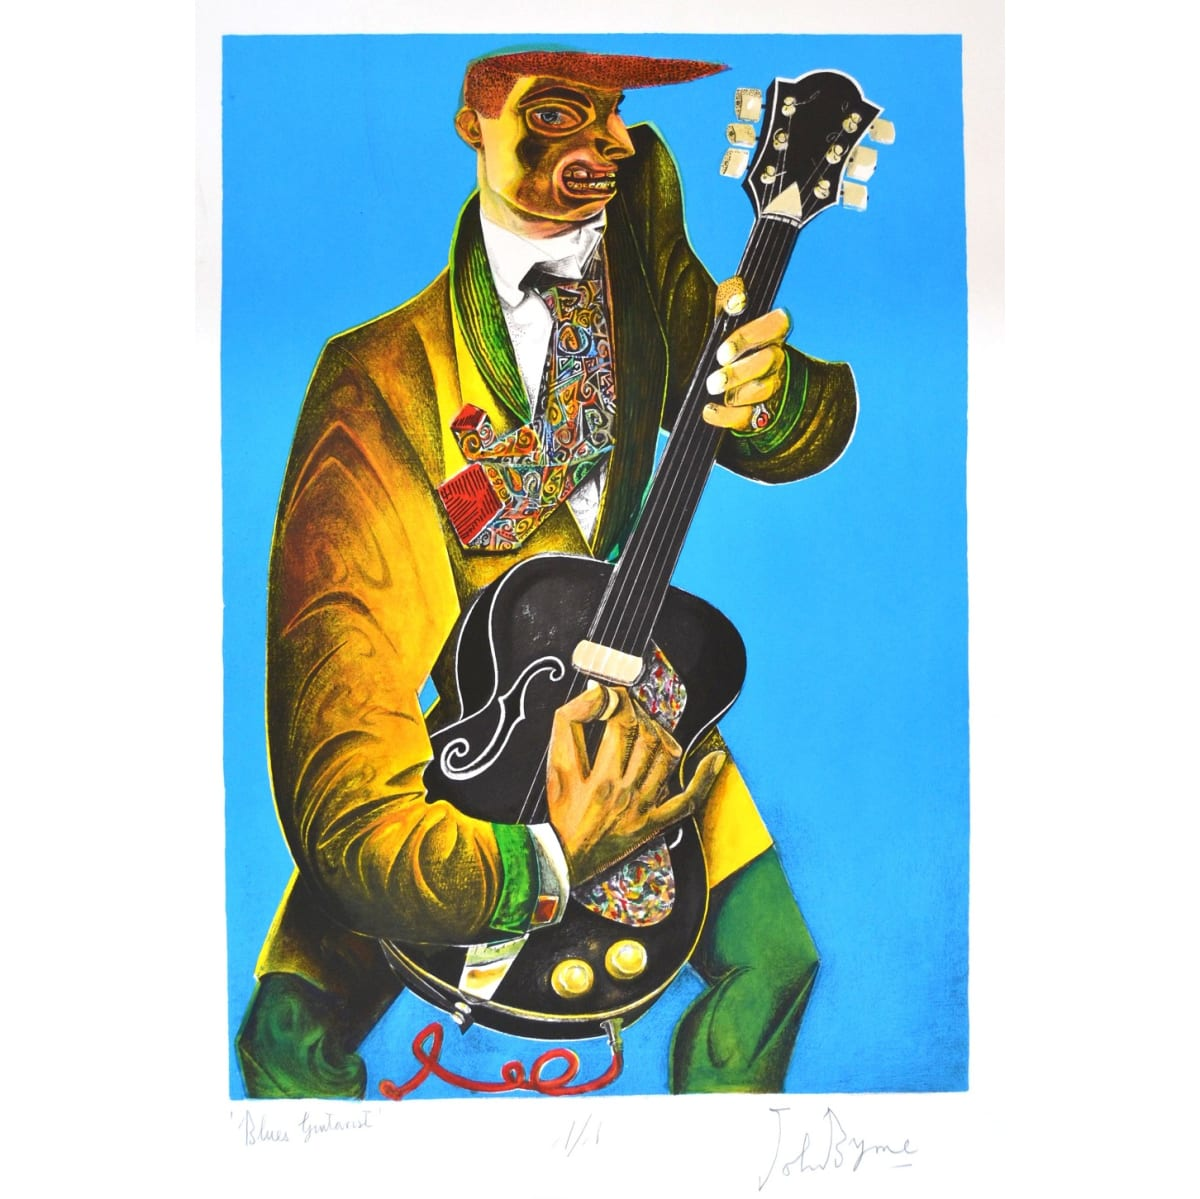 John Byrne Blues Guitarist, 2019 signed, titled and numbered 1/1 in pencil to margin hand coloured lithograph 26 3/4 x 18 3/4 inches